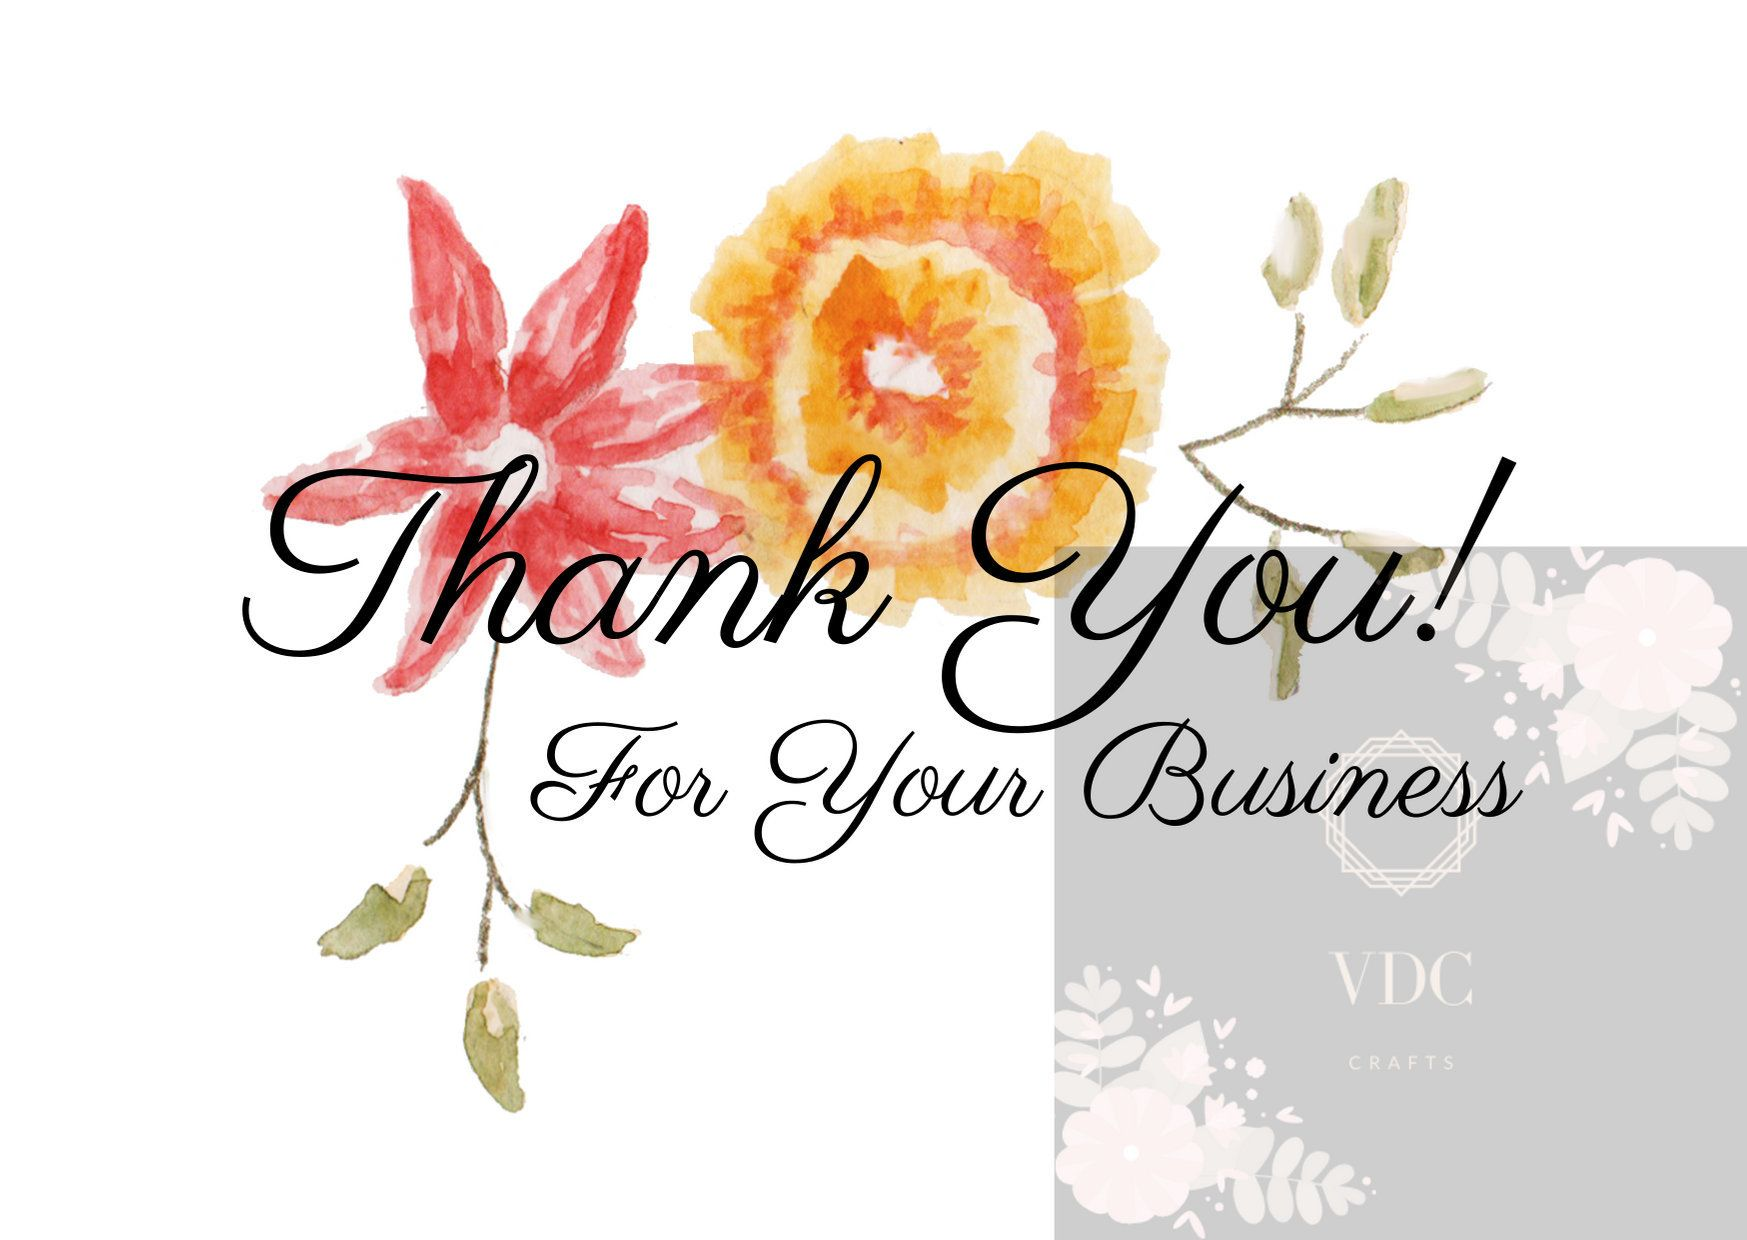 Thank You For Your Business- Thank You Card by VDCCrafter on Etsy #thank you card #floral thank you card #budiness thank you card #business card